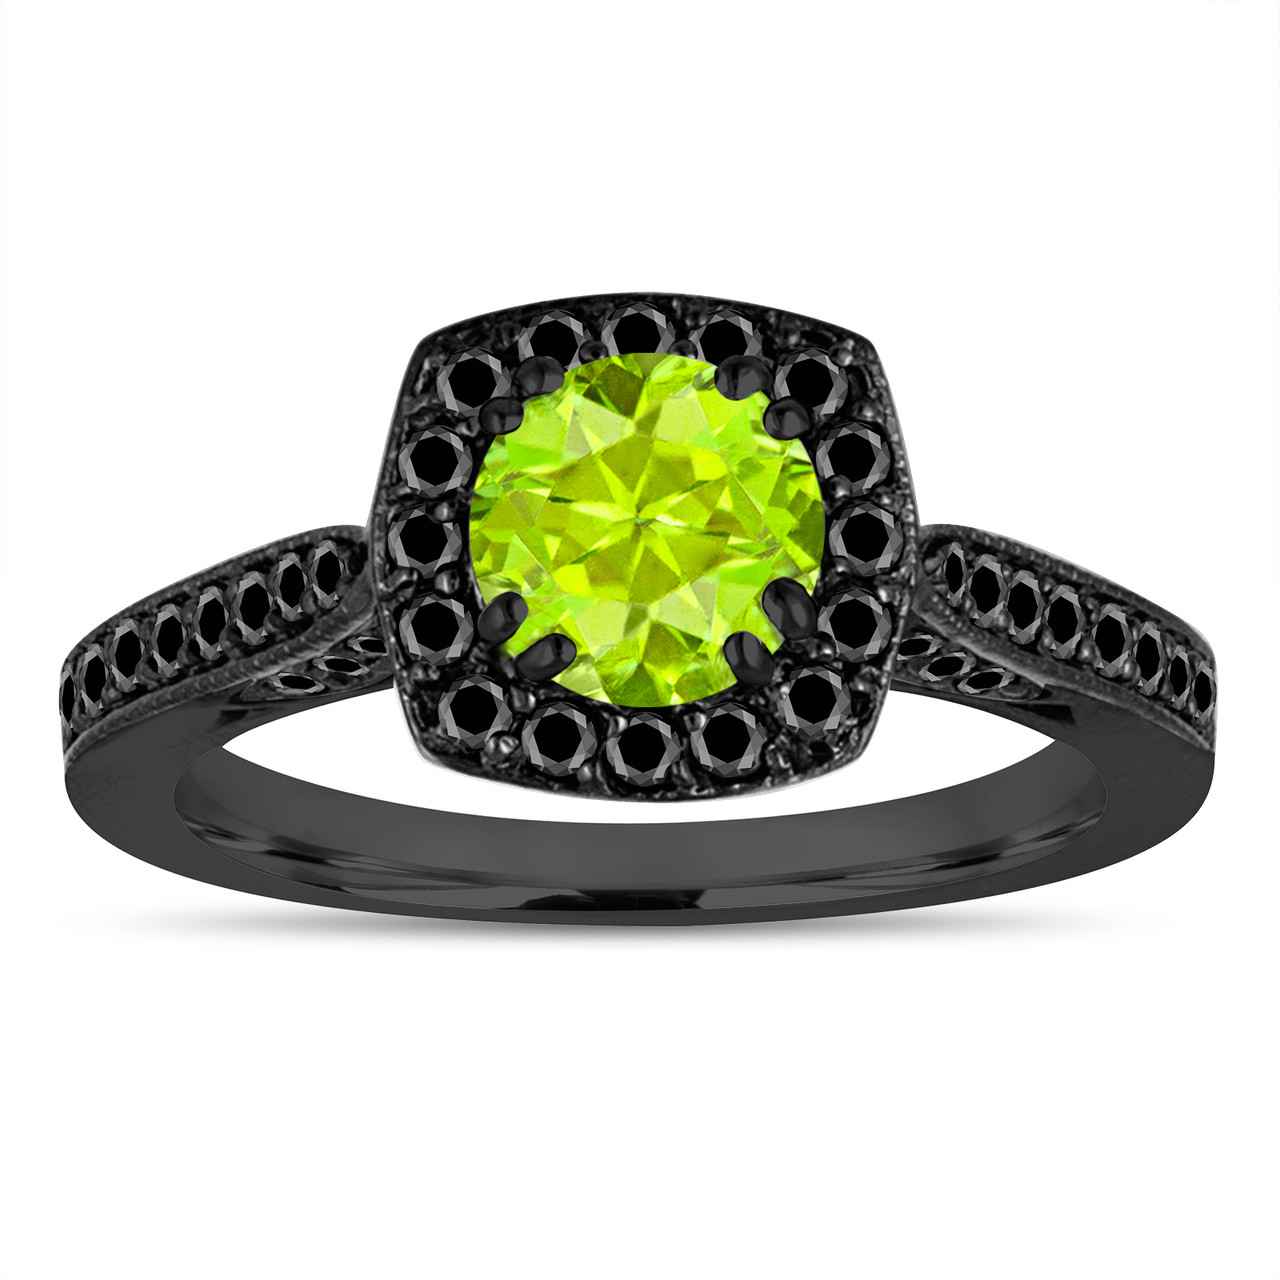 sterling princess s oval natural rings engagement item jewelrypalace kate middleton women jewelry ring cut silver peridot william diana from wedding in luxury green